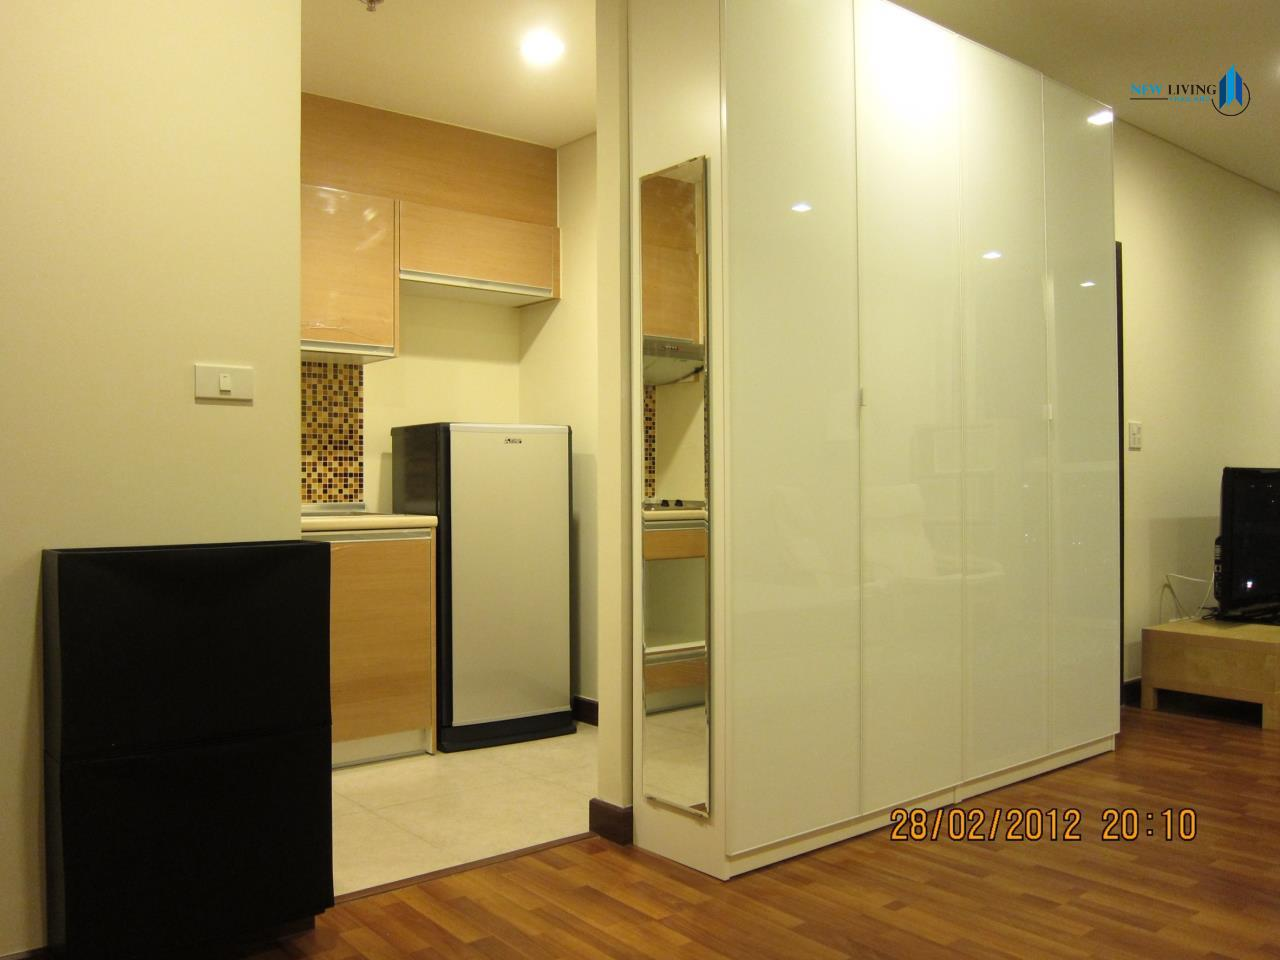 New Living Thailand Agency's **** Urgent rent  Le Luk Condo, 1 bedroom 35 sq.m.,  fully furnished **** 5